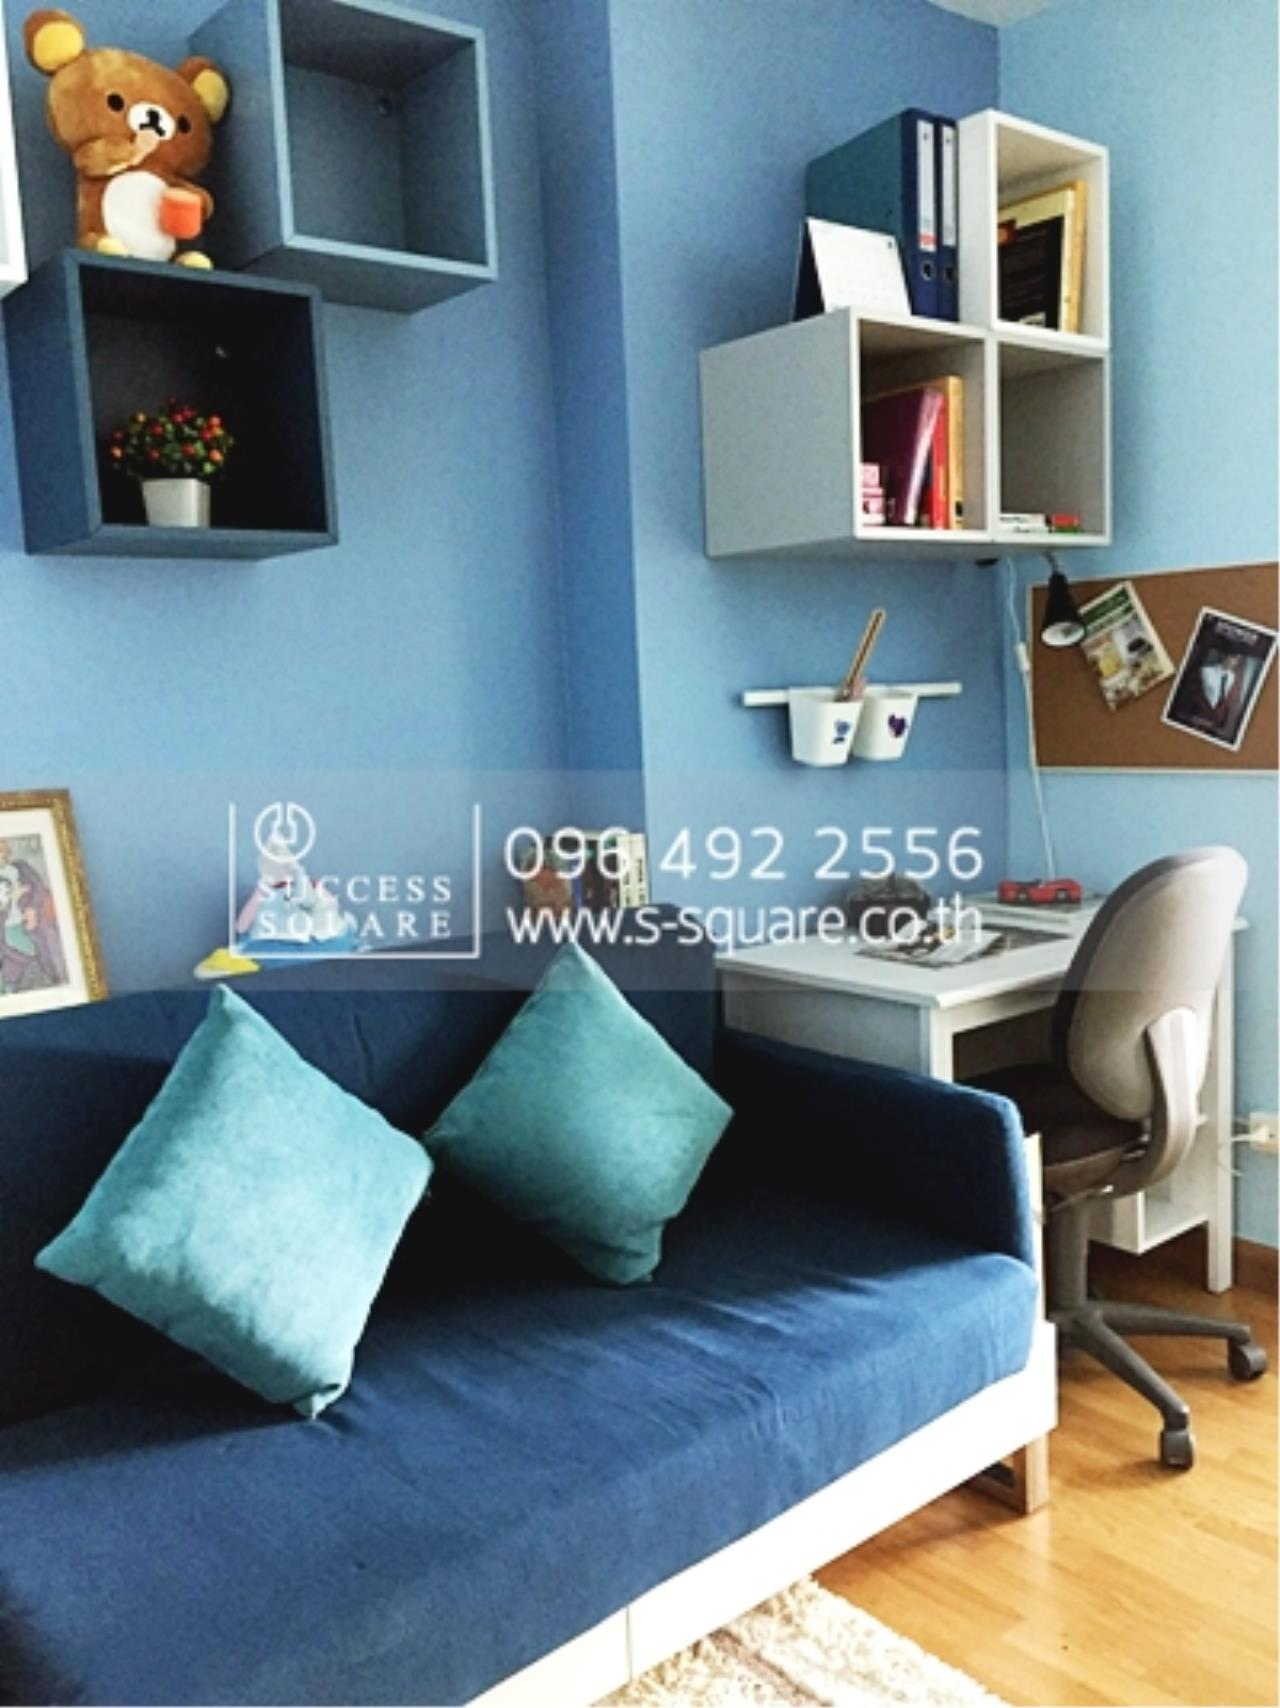 Success Square Agency's Aspire Rama 4, Condo For Rent 1 Bedrooms 3